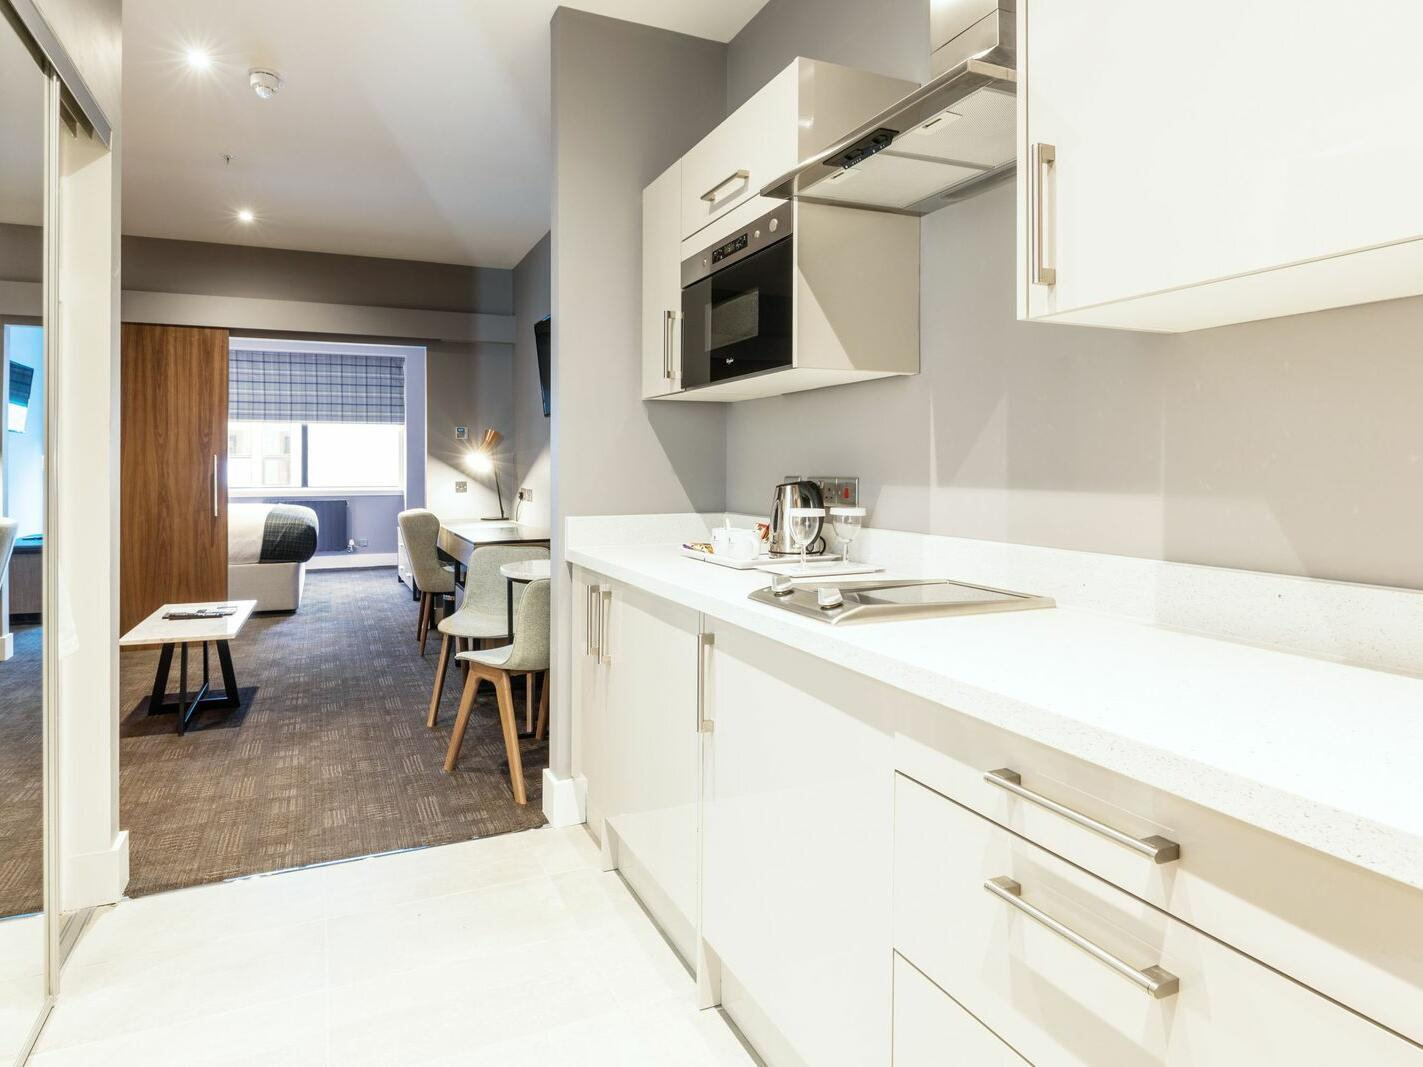 The Pantry with White Pantry Cupboards and with Kitchen Supplies and White Furniture in the Corporate King Suite at Sandman Signature Aberdeen Hotel